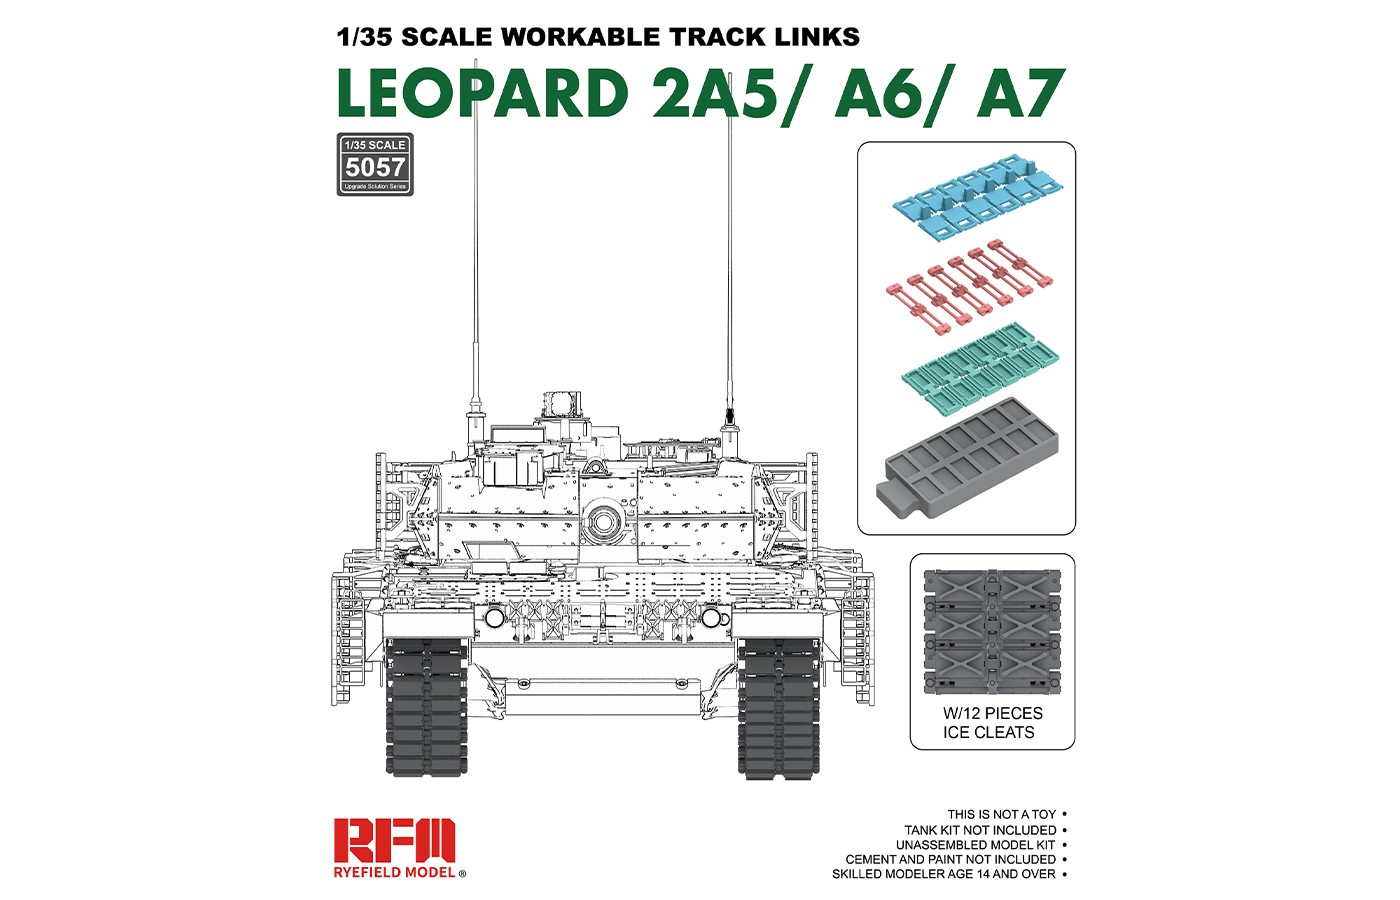 RM-5057 LEOPARD 2A5/A6/A7 WORKABLE TRACK LINKS